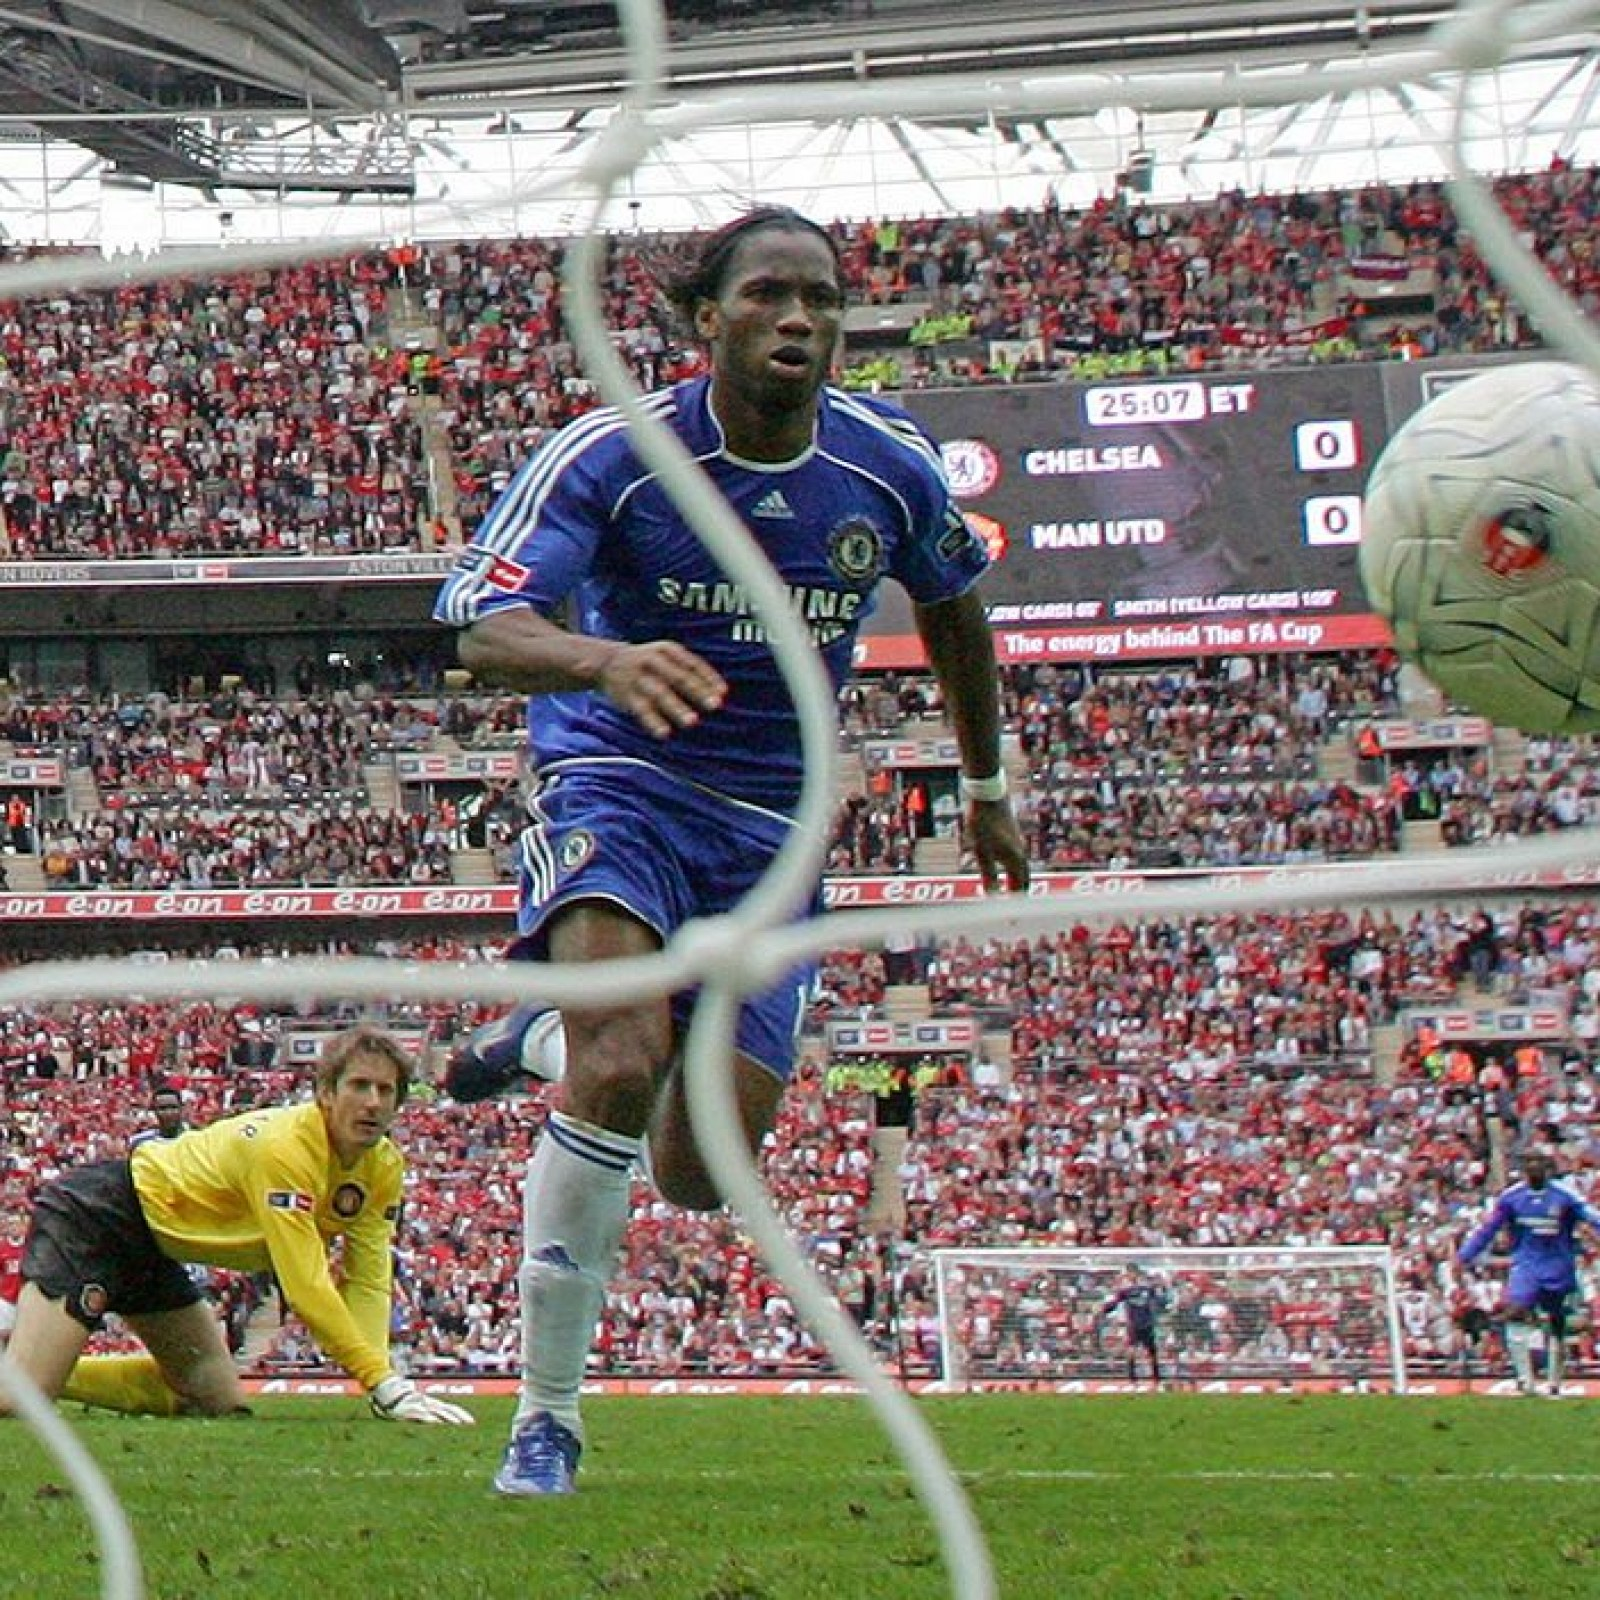 2007 FA Cup Final